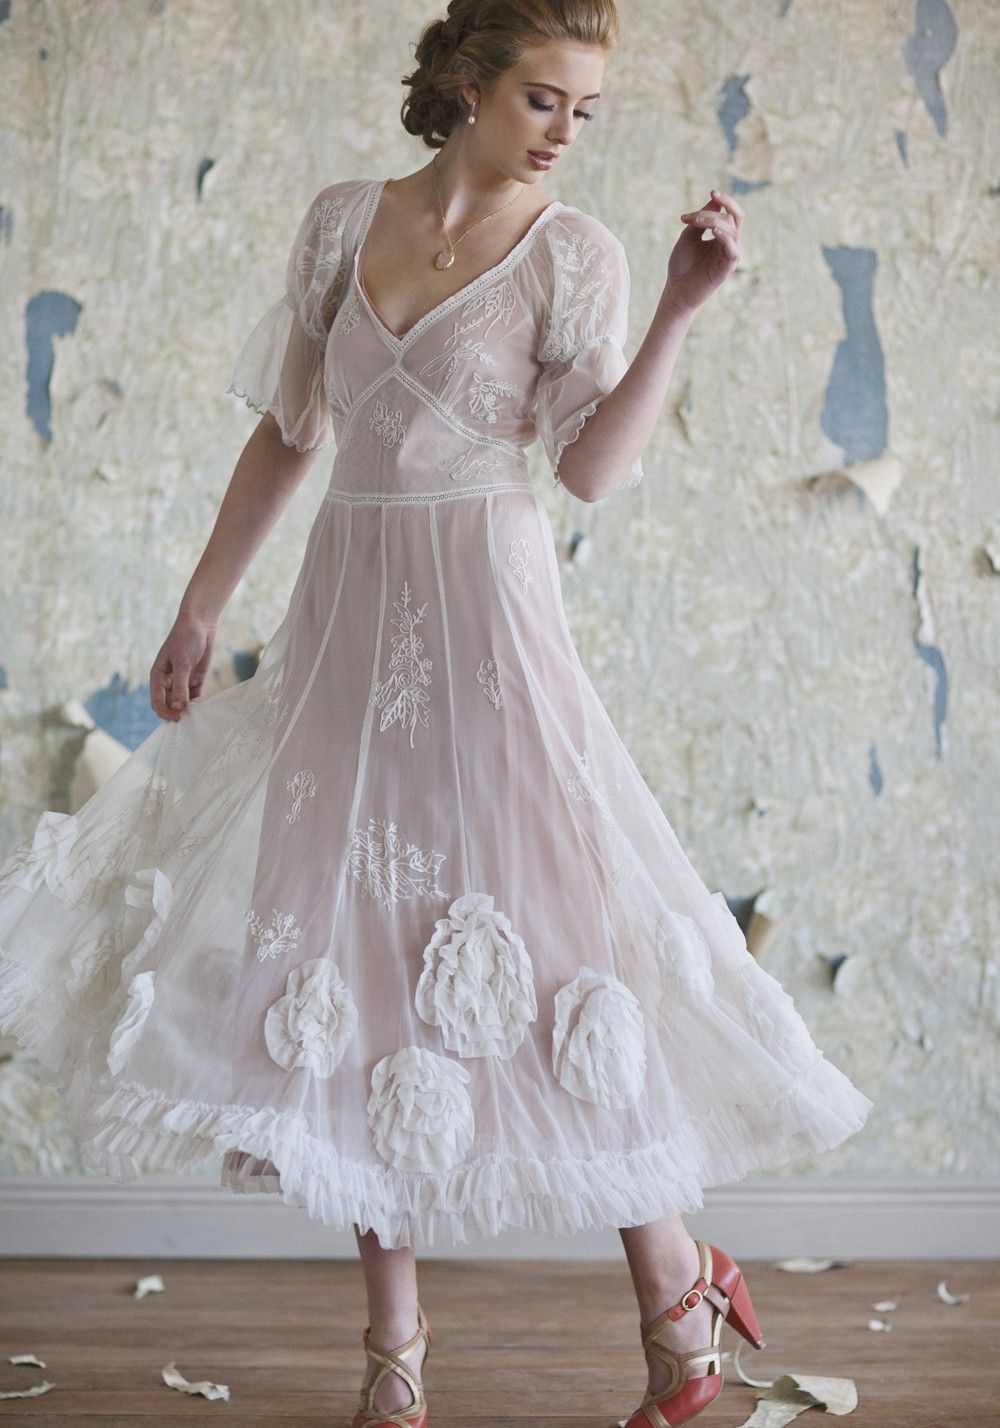 Claire rosette wedding dress vintage inspired bridal dresses and